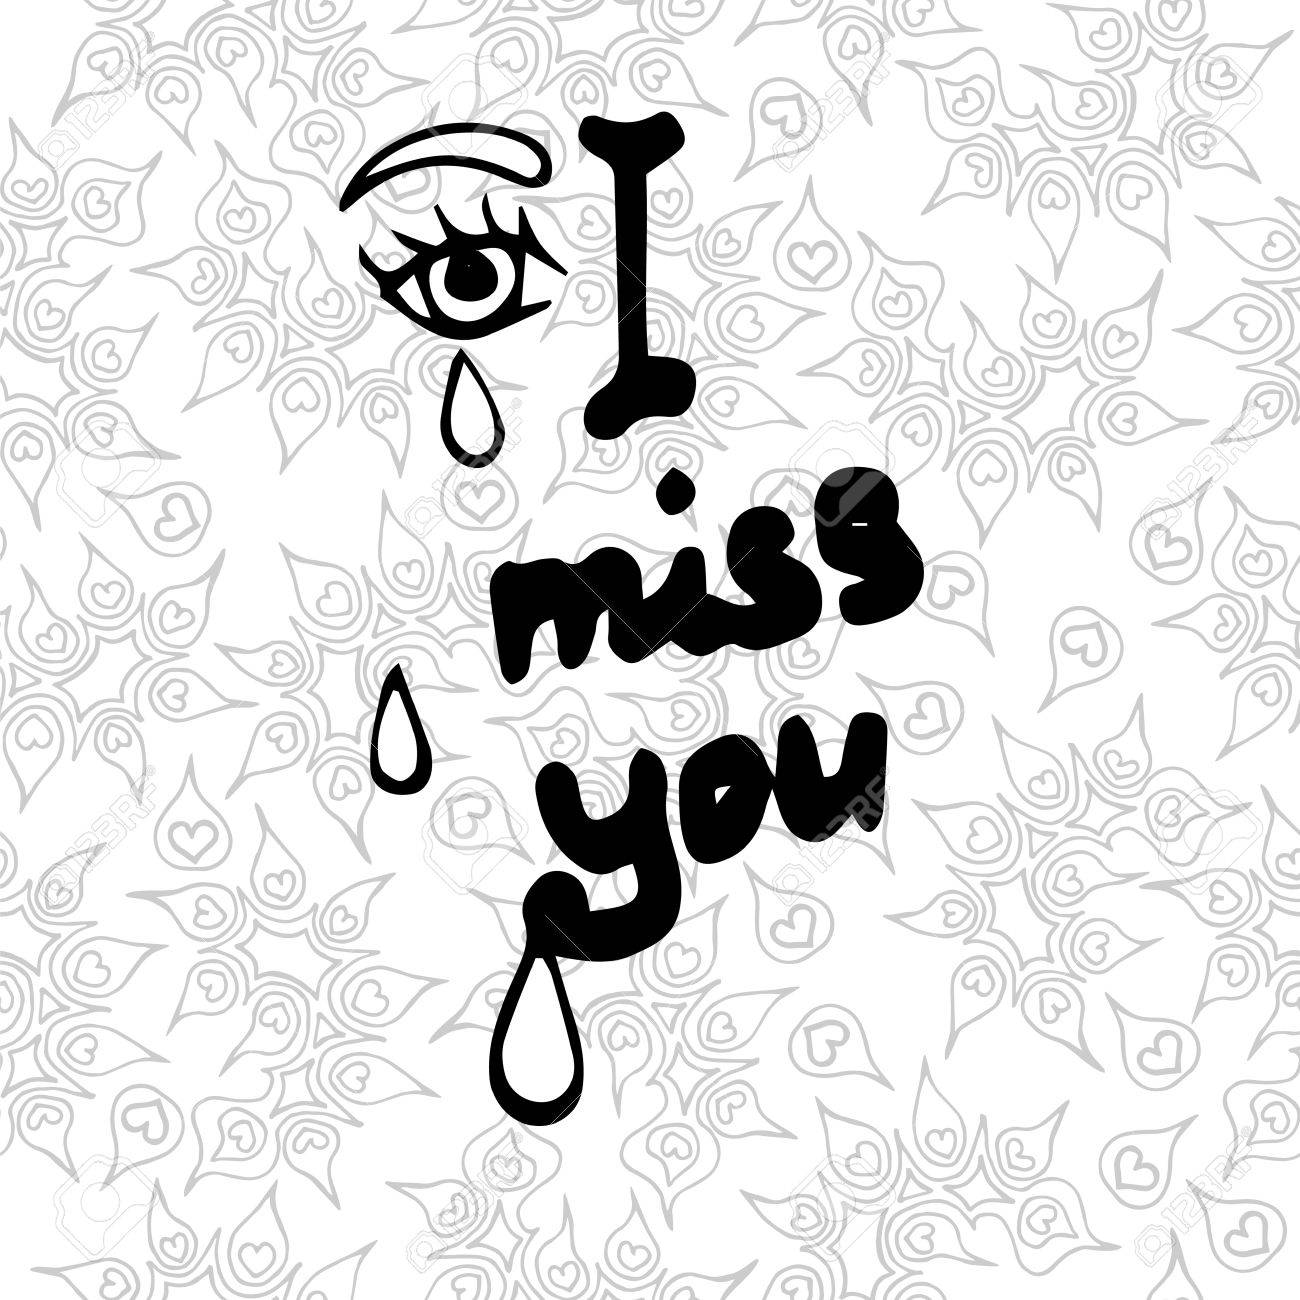 Lettering I Miss You With Tear On The Seamless Background